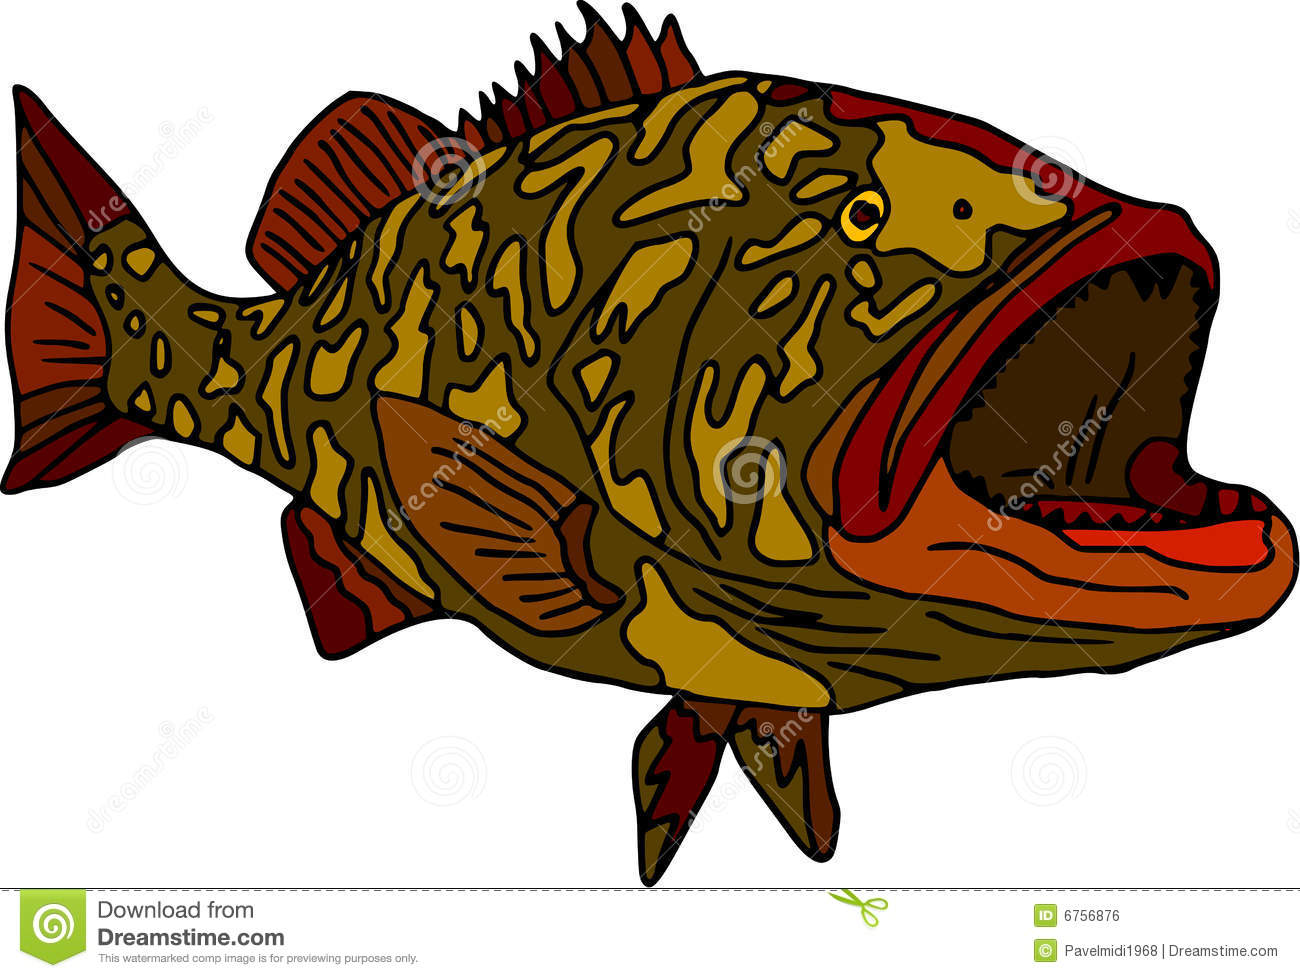 Grouper clipart #11, Download drawings